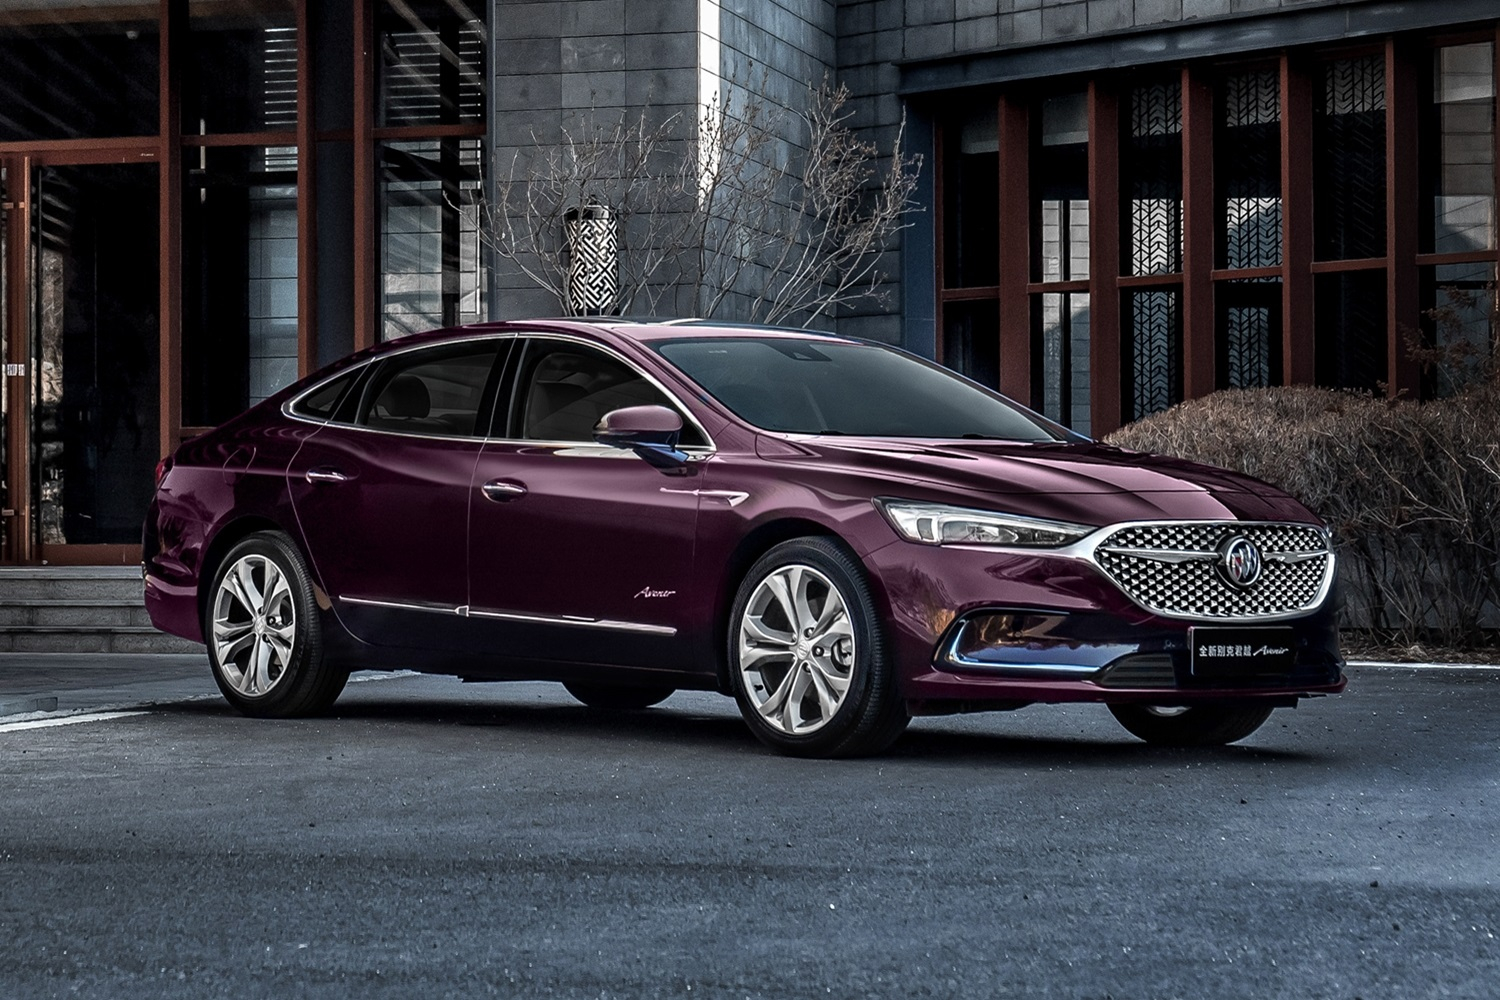 2021 Buick Lacrosse Gets More Refined Than Ever | Gm Authority 2021 Buick Verano Reviews, Used, Price